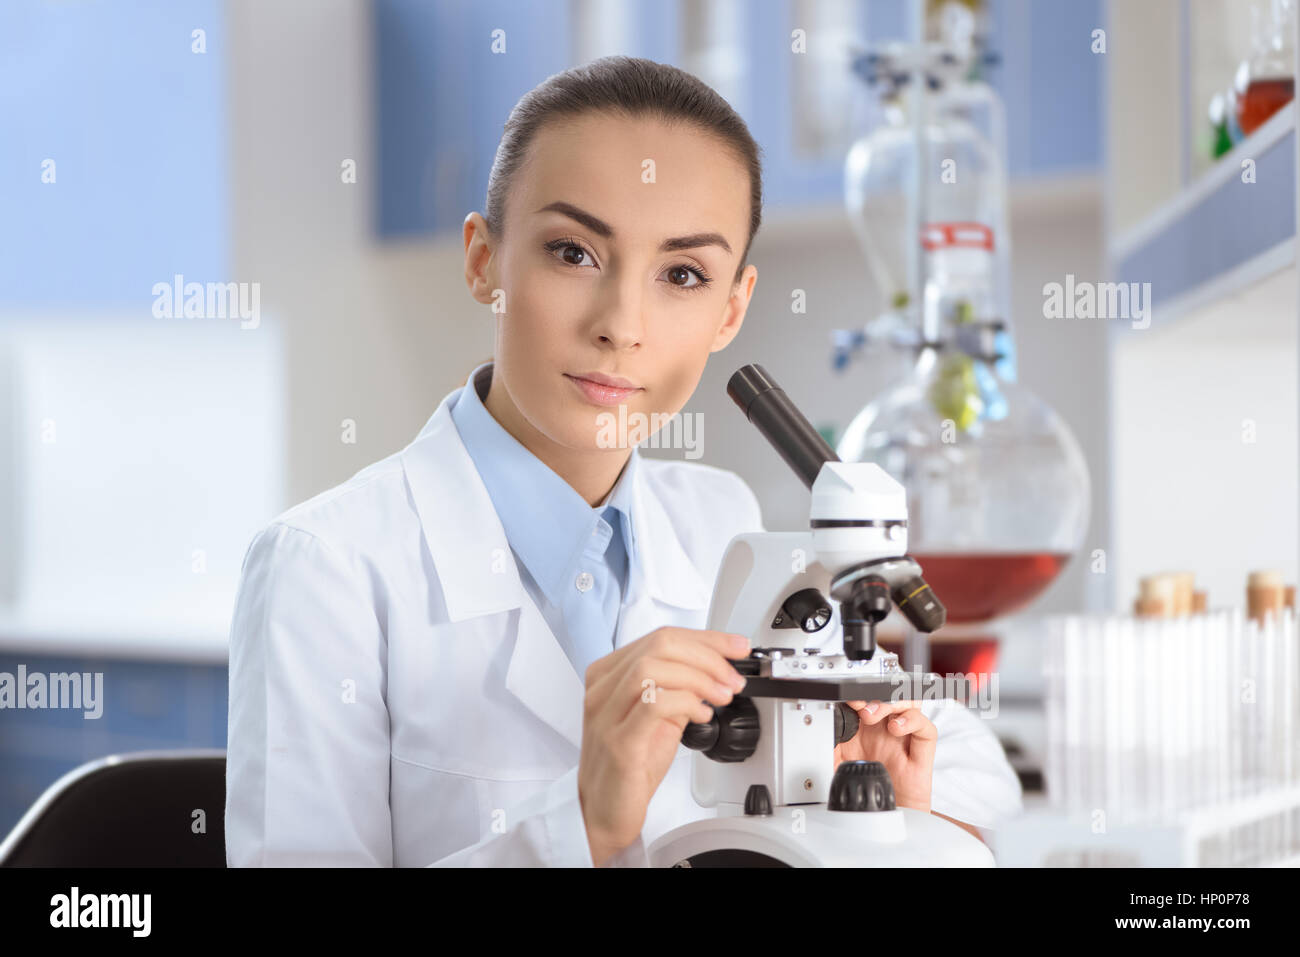 scientist in lab coat working with microscope and looking at camera - Stock Image